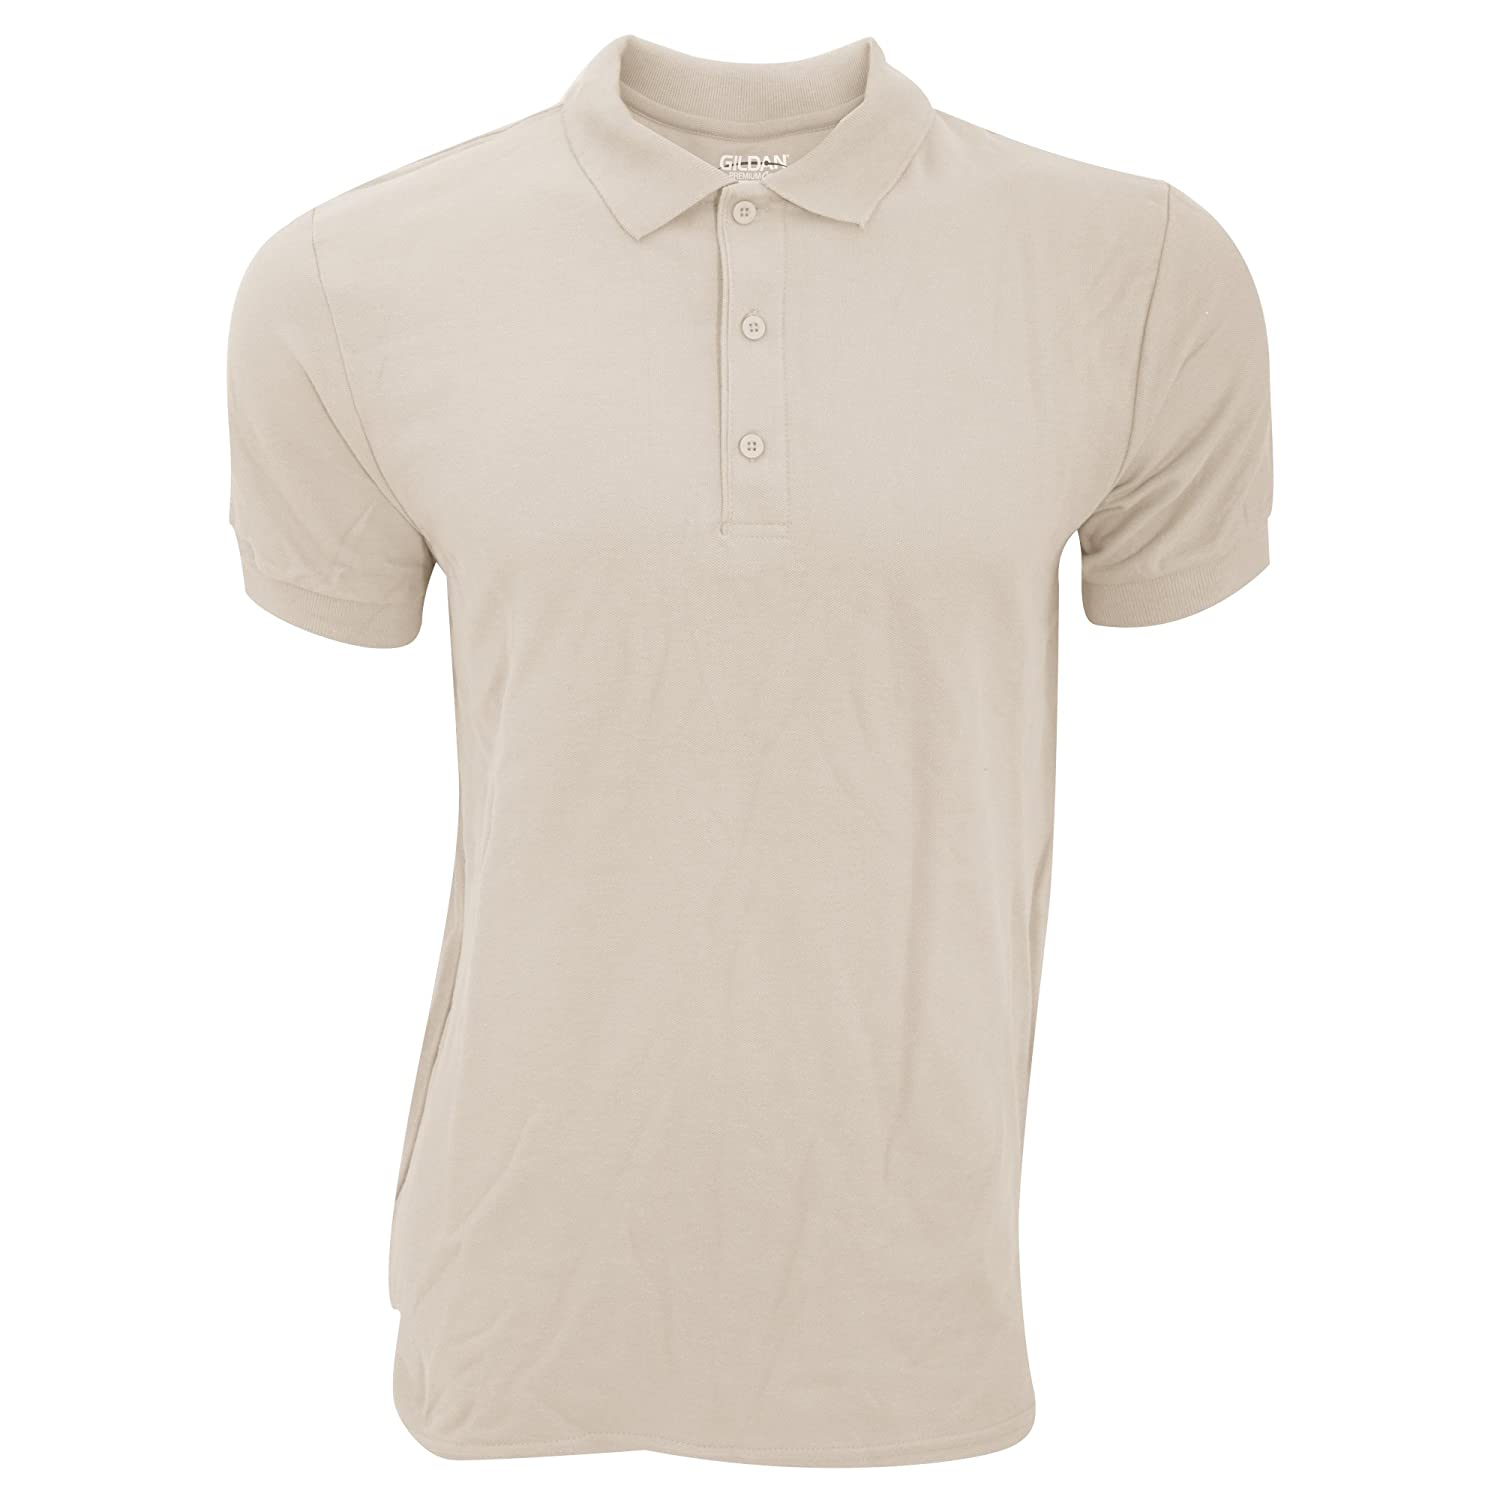 Gildan Mens Premium Cotton Sport Double Pique Polo Shirt